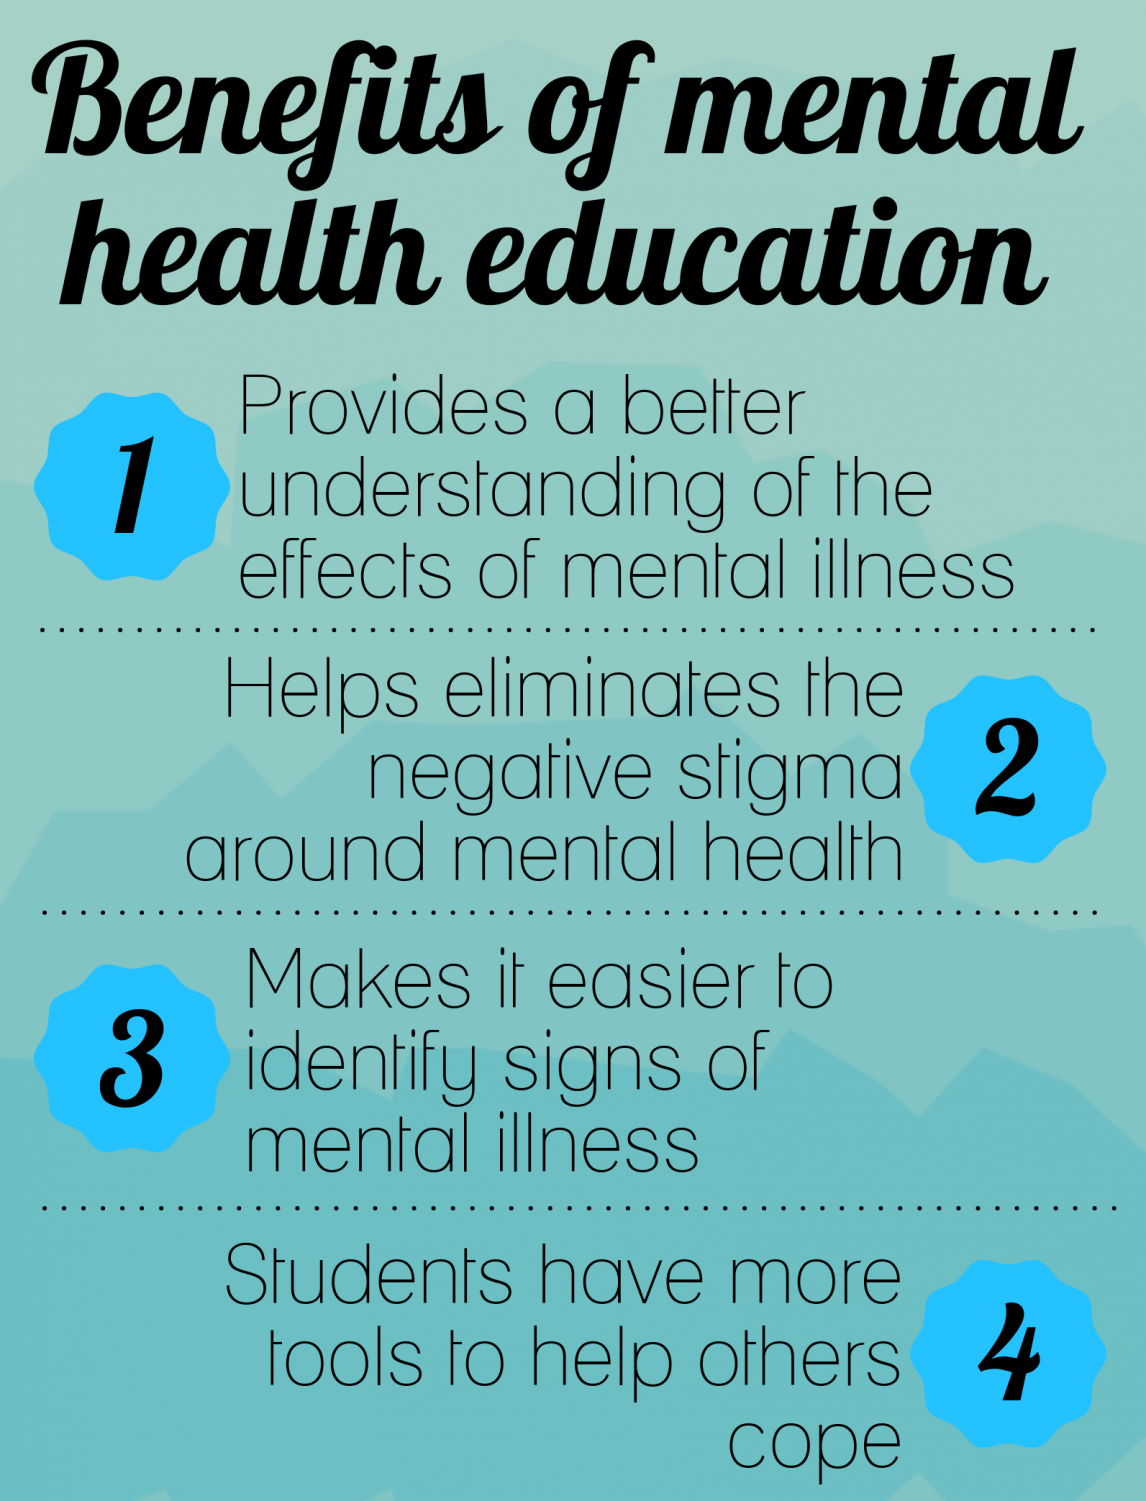 EDITORIAL: Mental health classes benefit all students